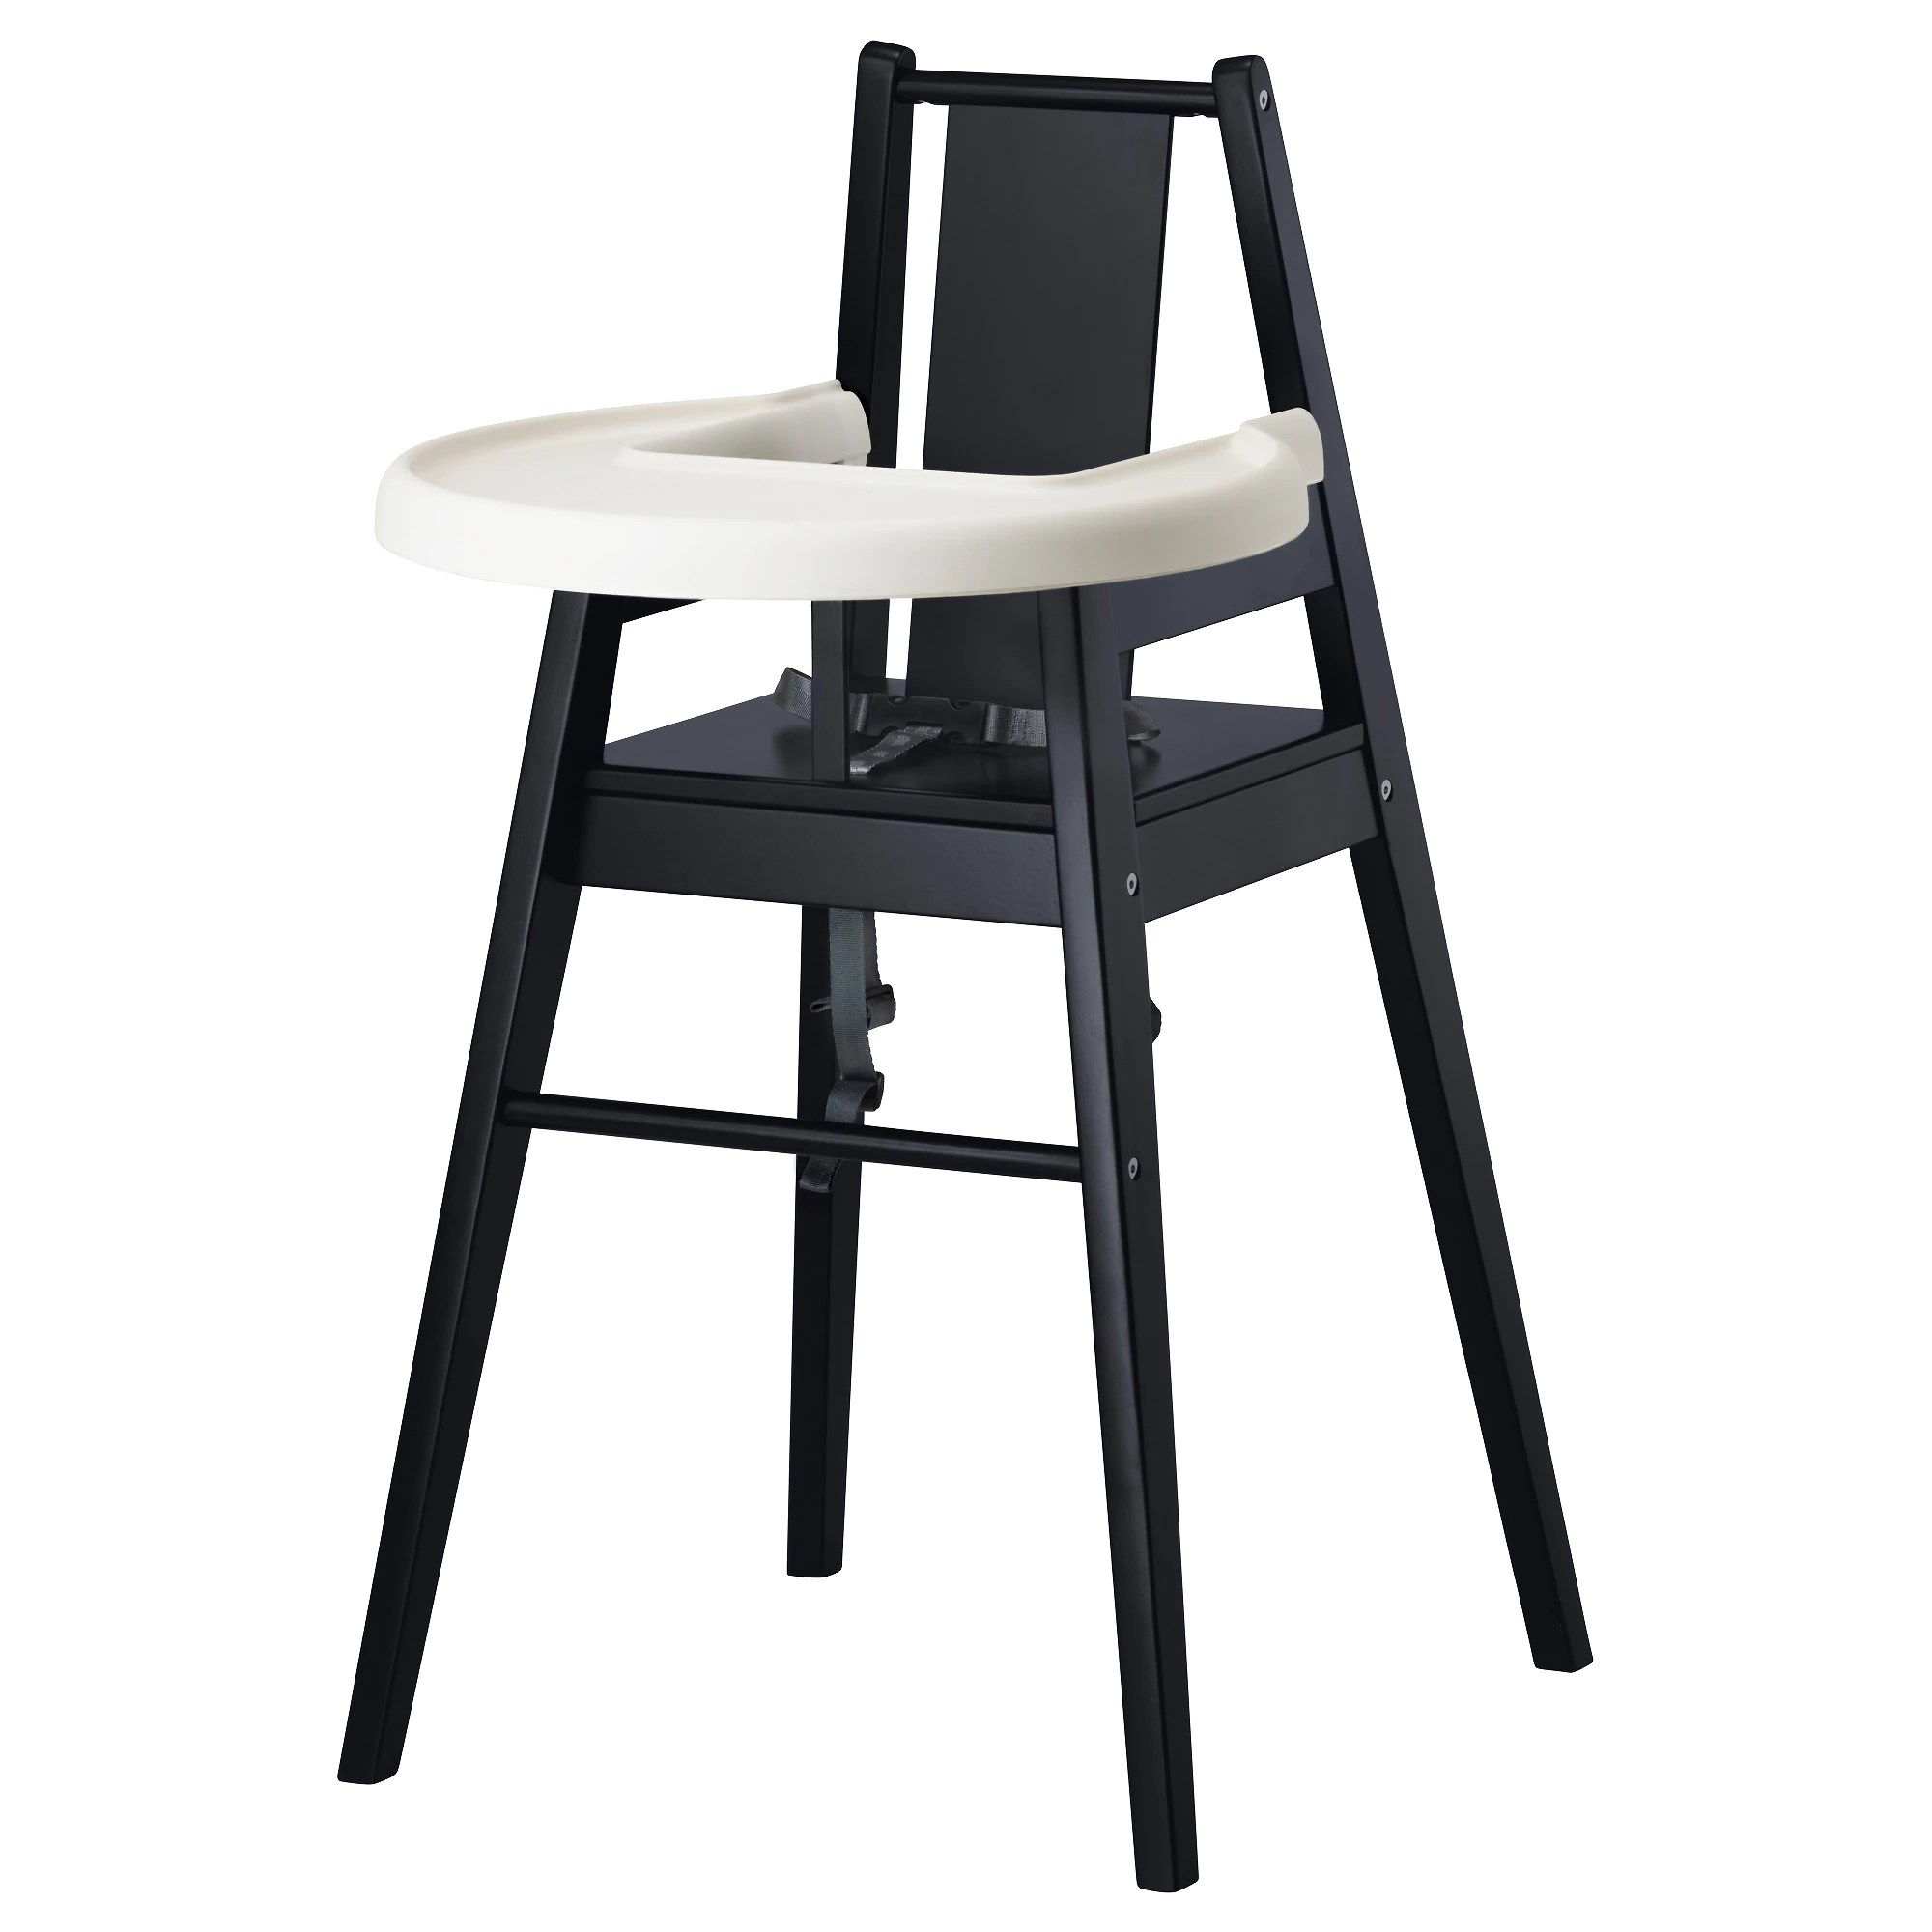 Chair High Chair BlÅmes High Chair With Tray Black Birch